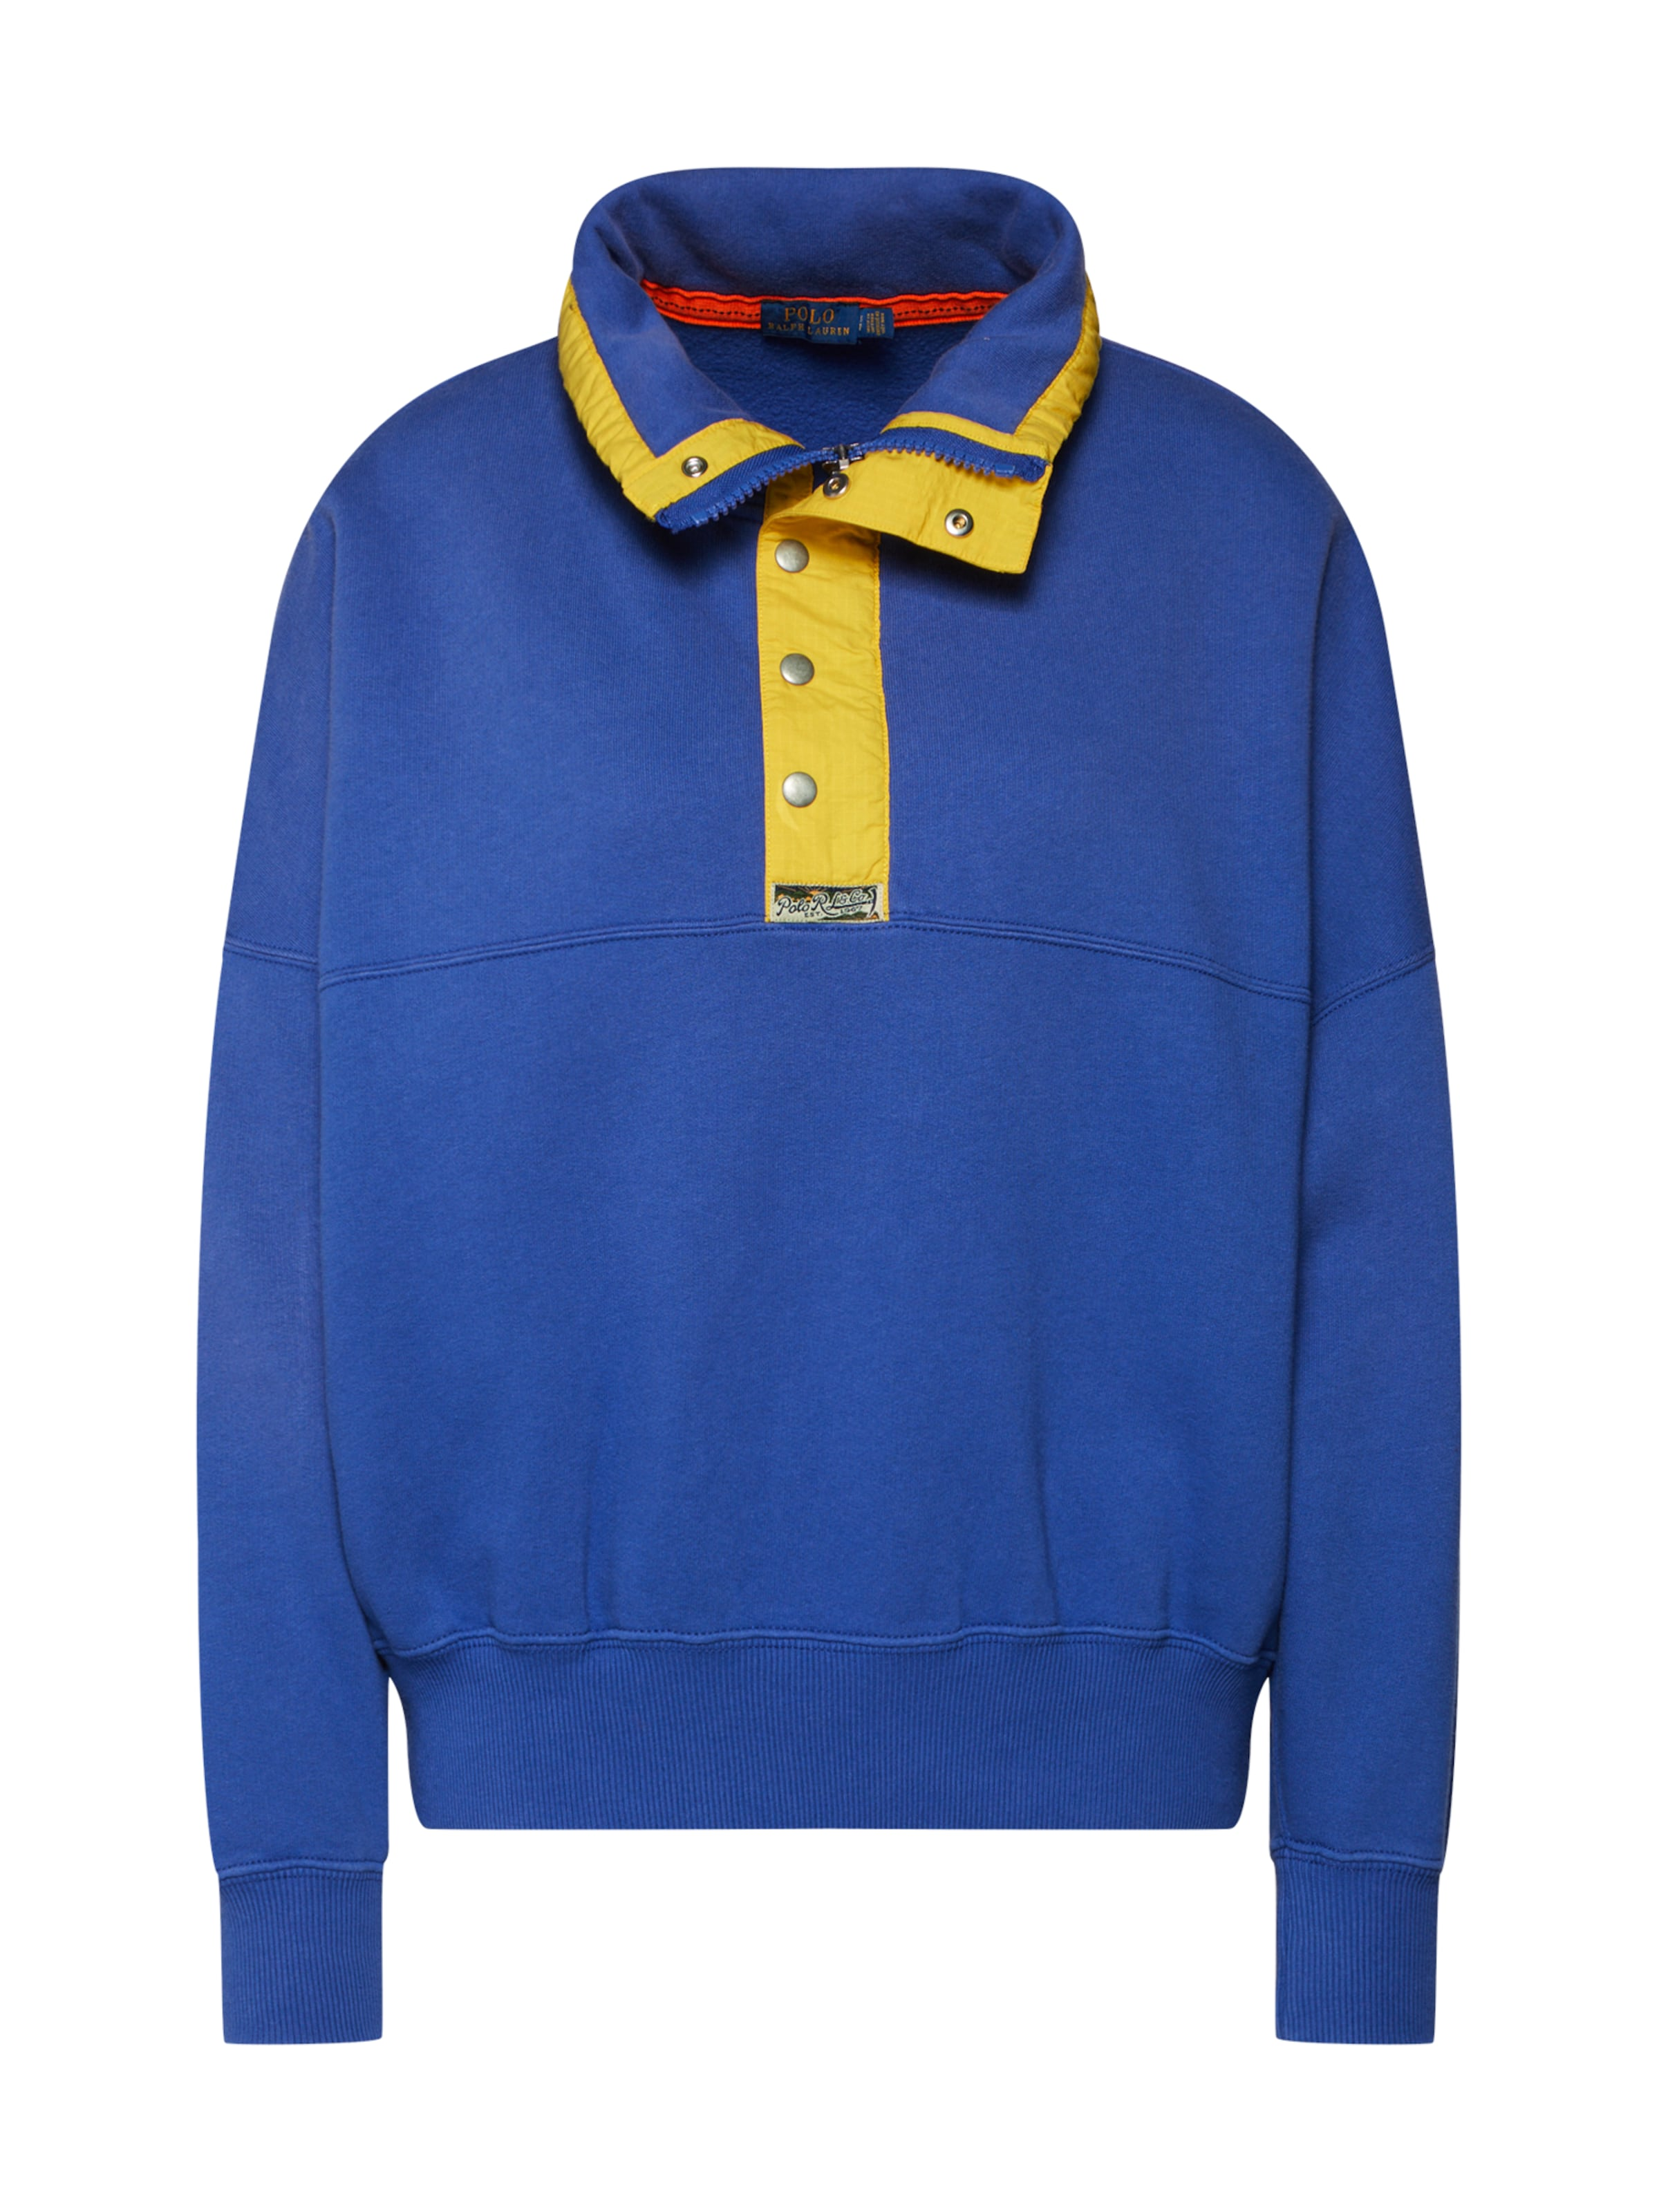 Fnlnk knit' Sleeve Polo Sweat Bleu 'os Ralph En Lauren long shirt n0w8OkP